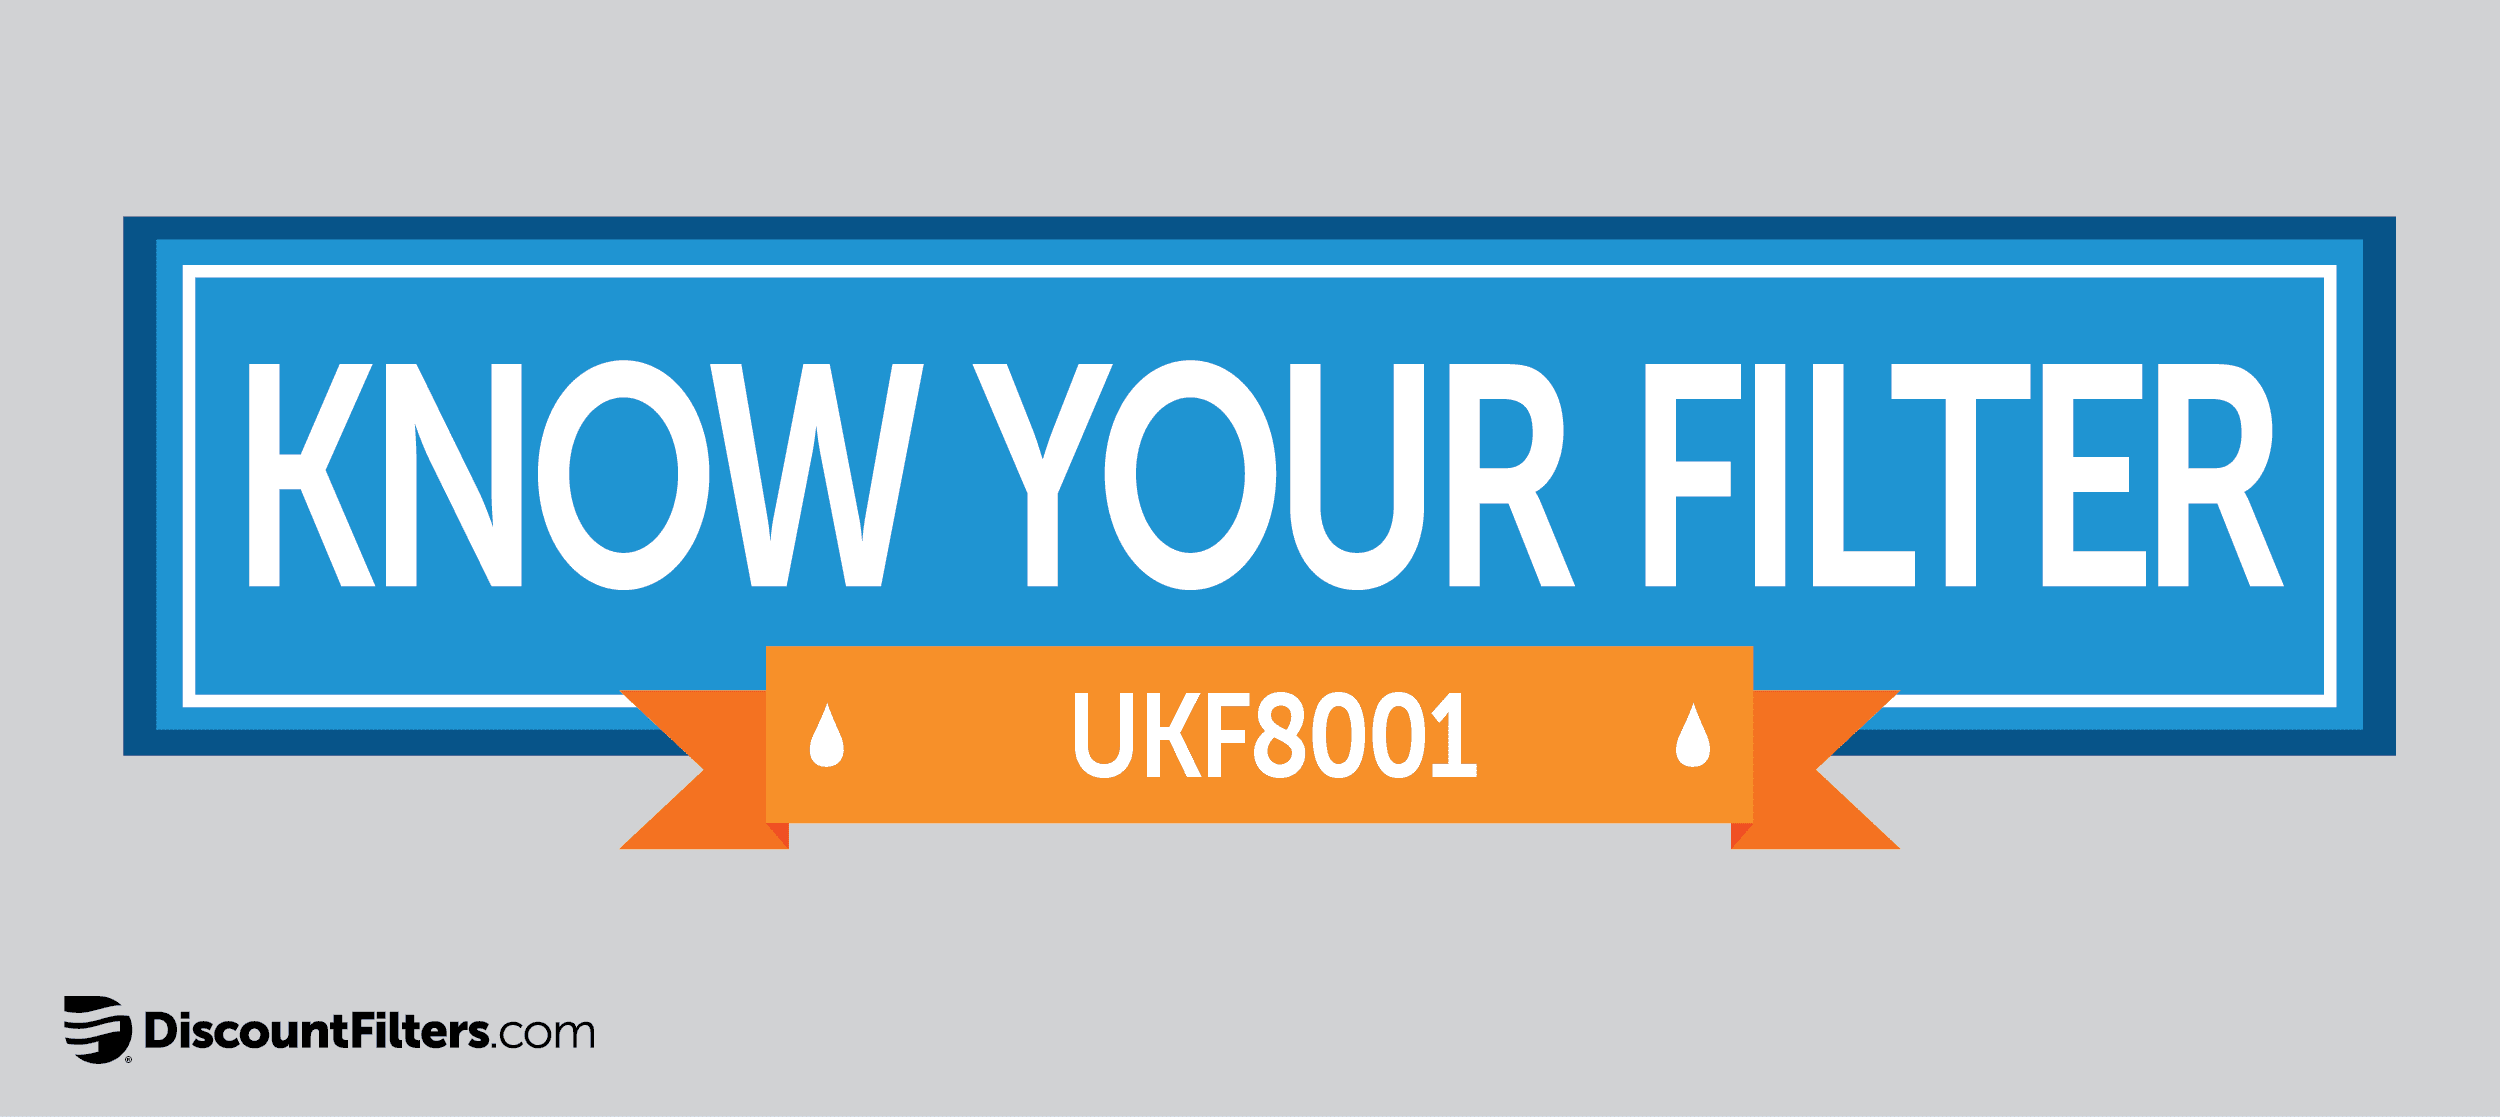 know your fridge filter: ukf8001